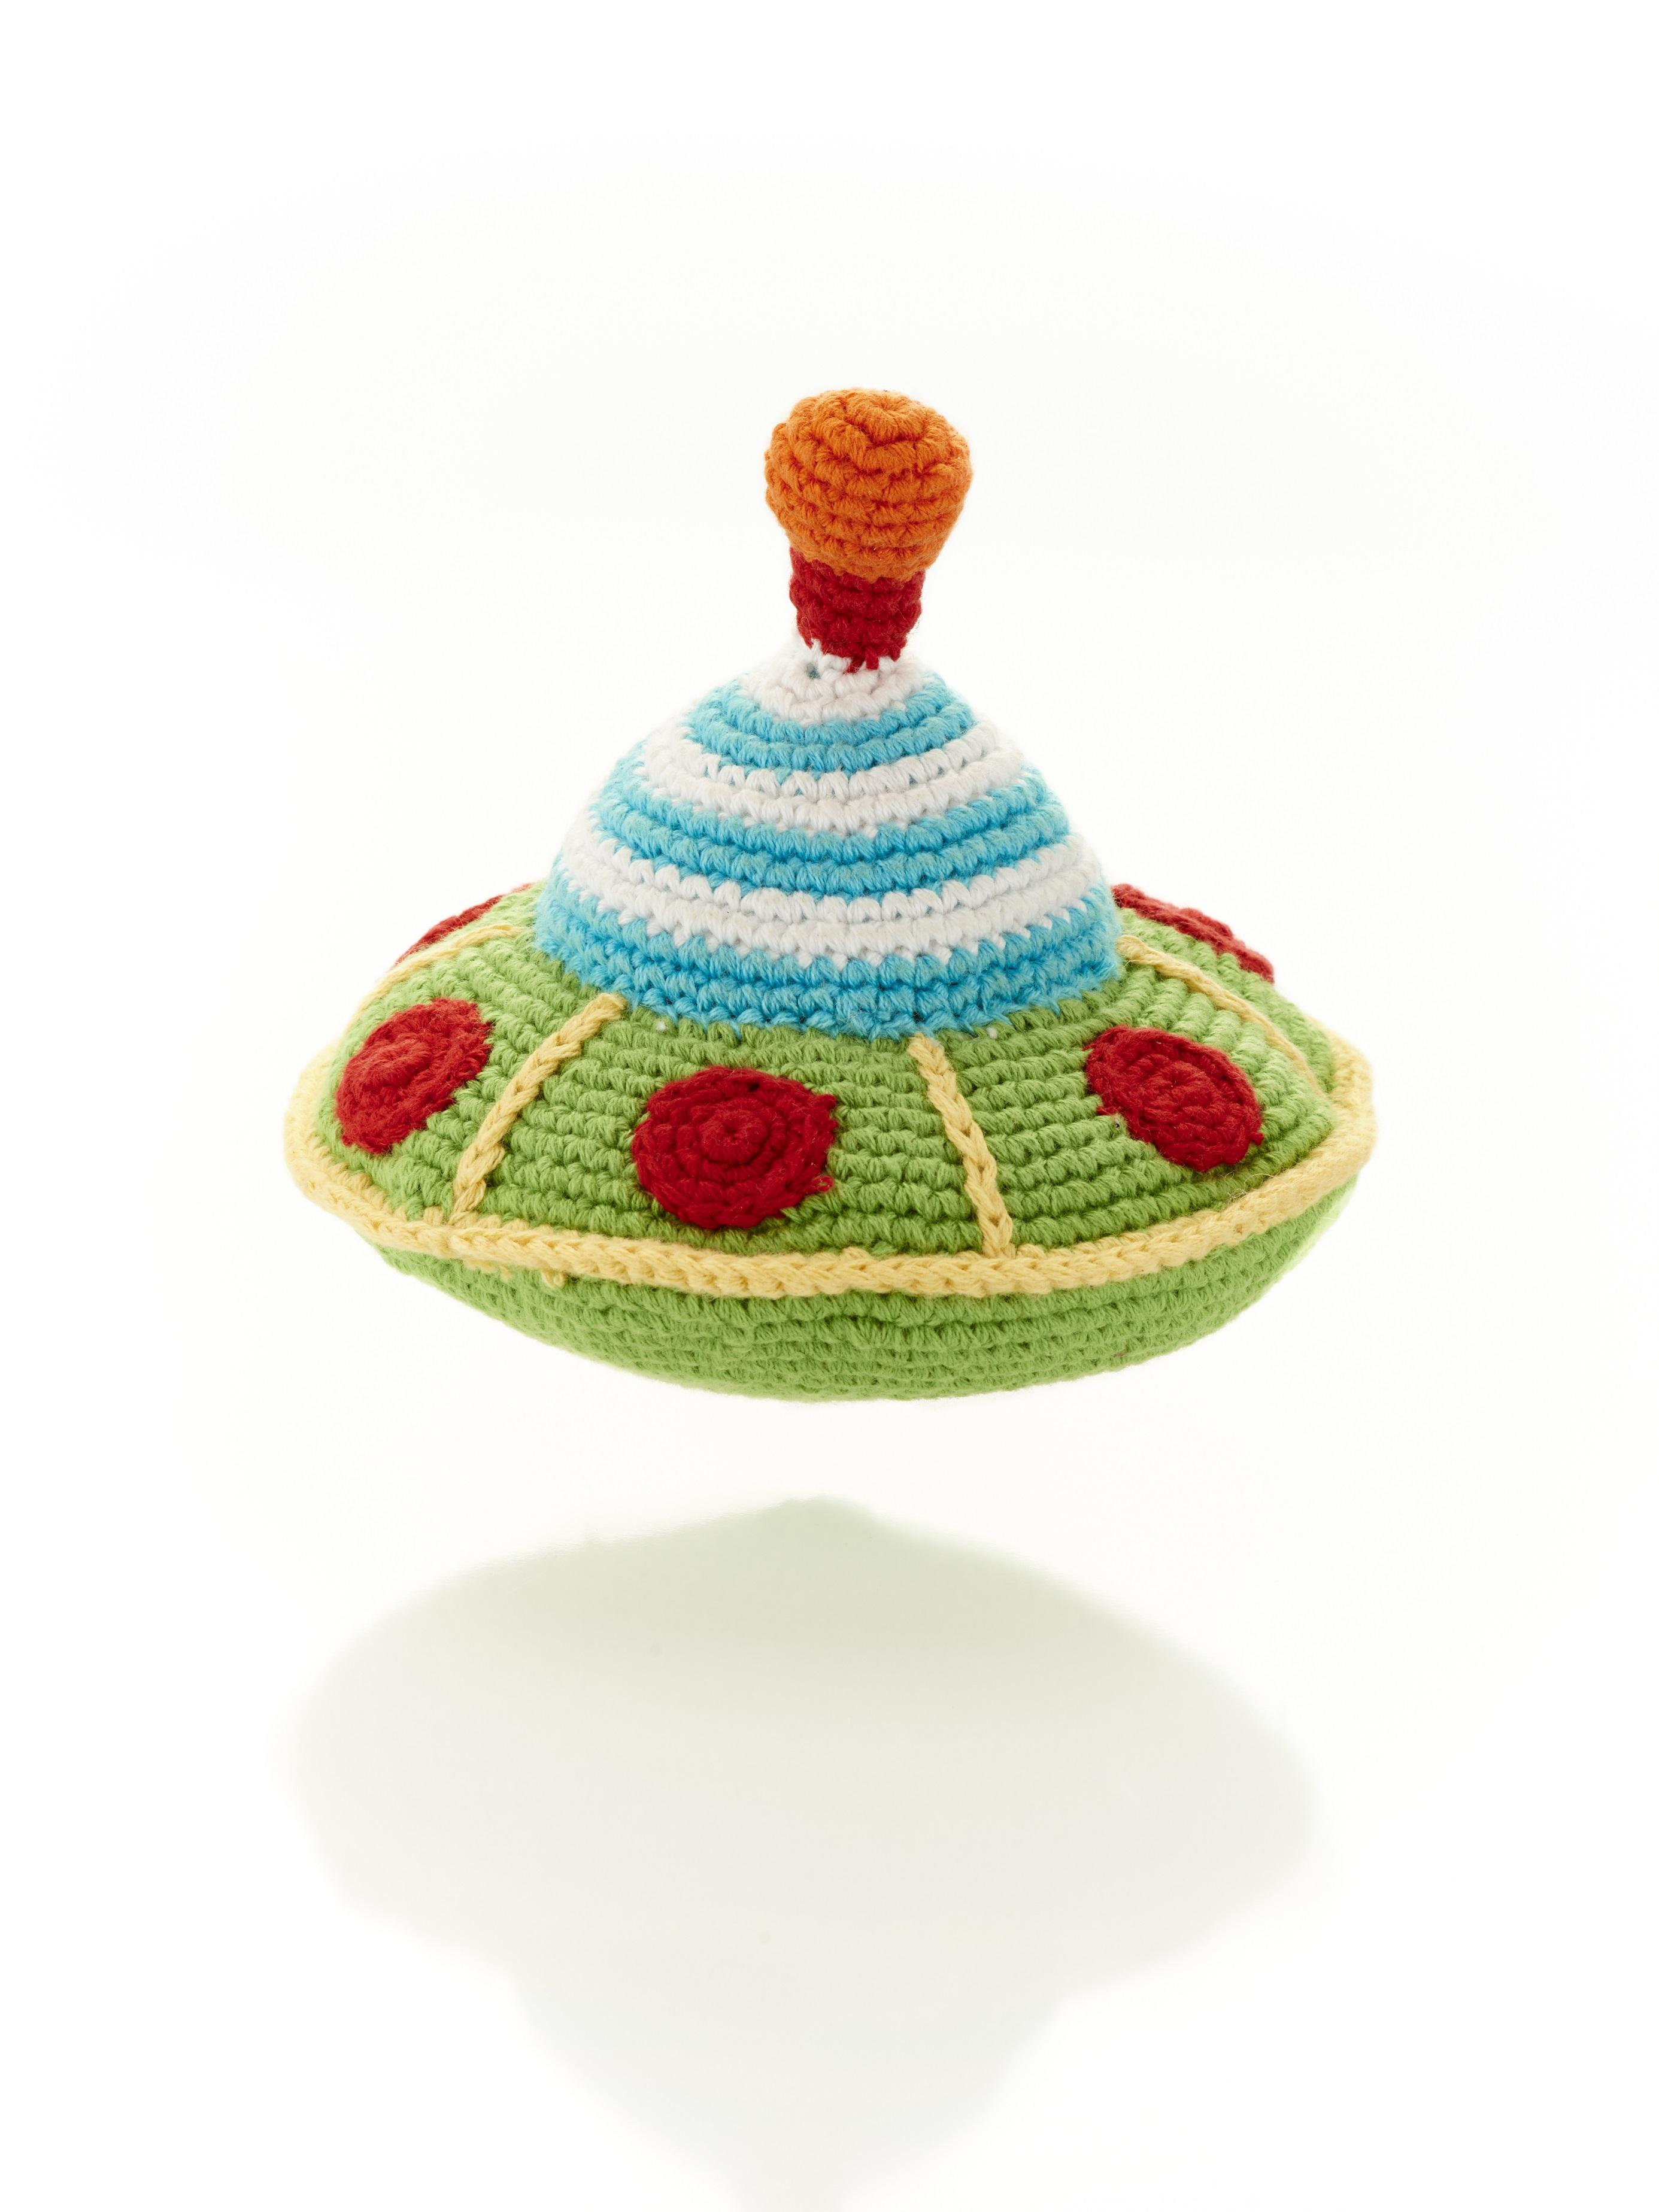 Green flying saucer crochet cotton space toy for babies with stripe blue and white top and red windows